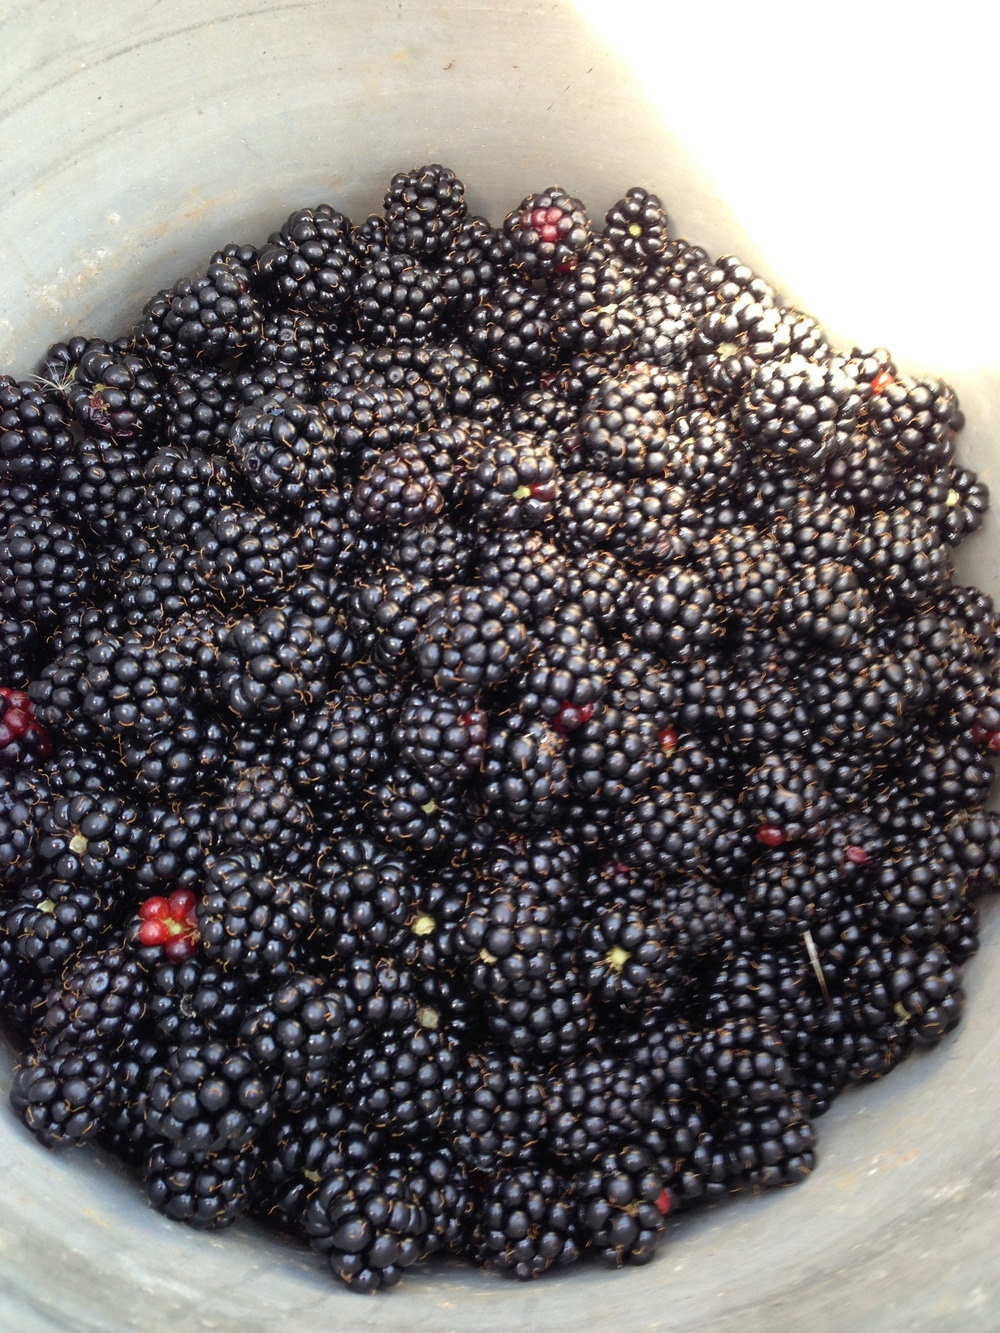 Fresh Blackberries in my Bucket!